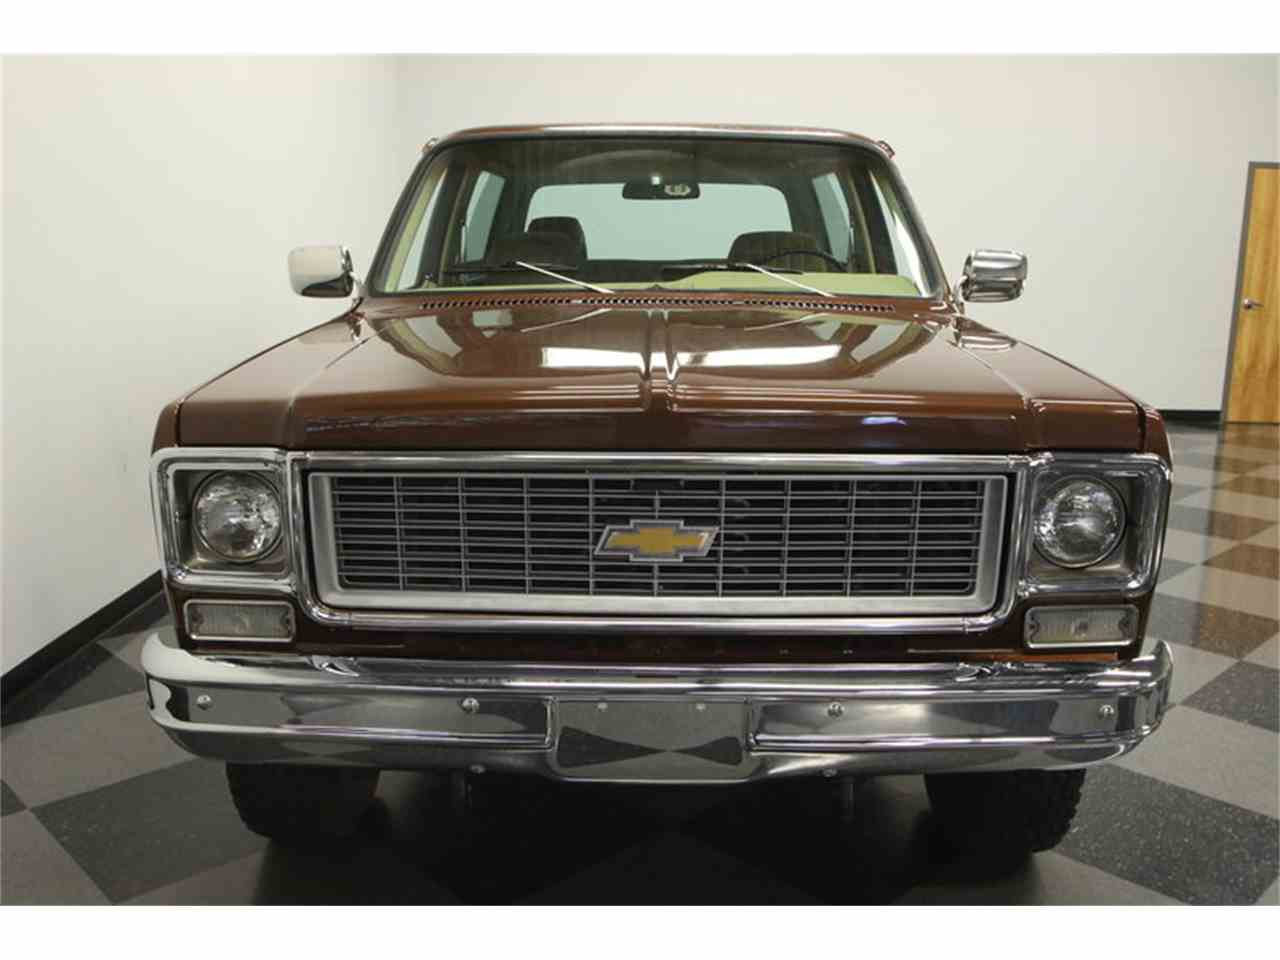 Large Picture of 1977 Chevrolet Blazer located in Lutz Florida - $22,995.00 - MZ6X